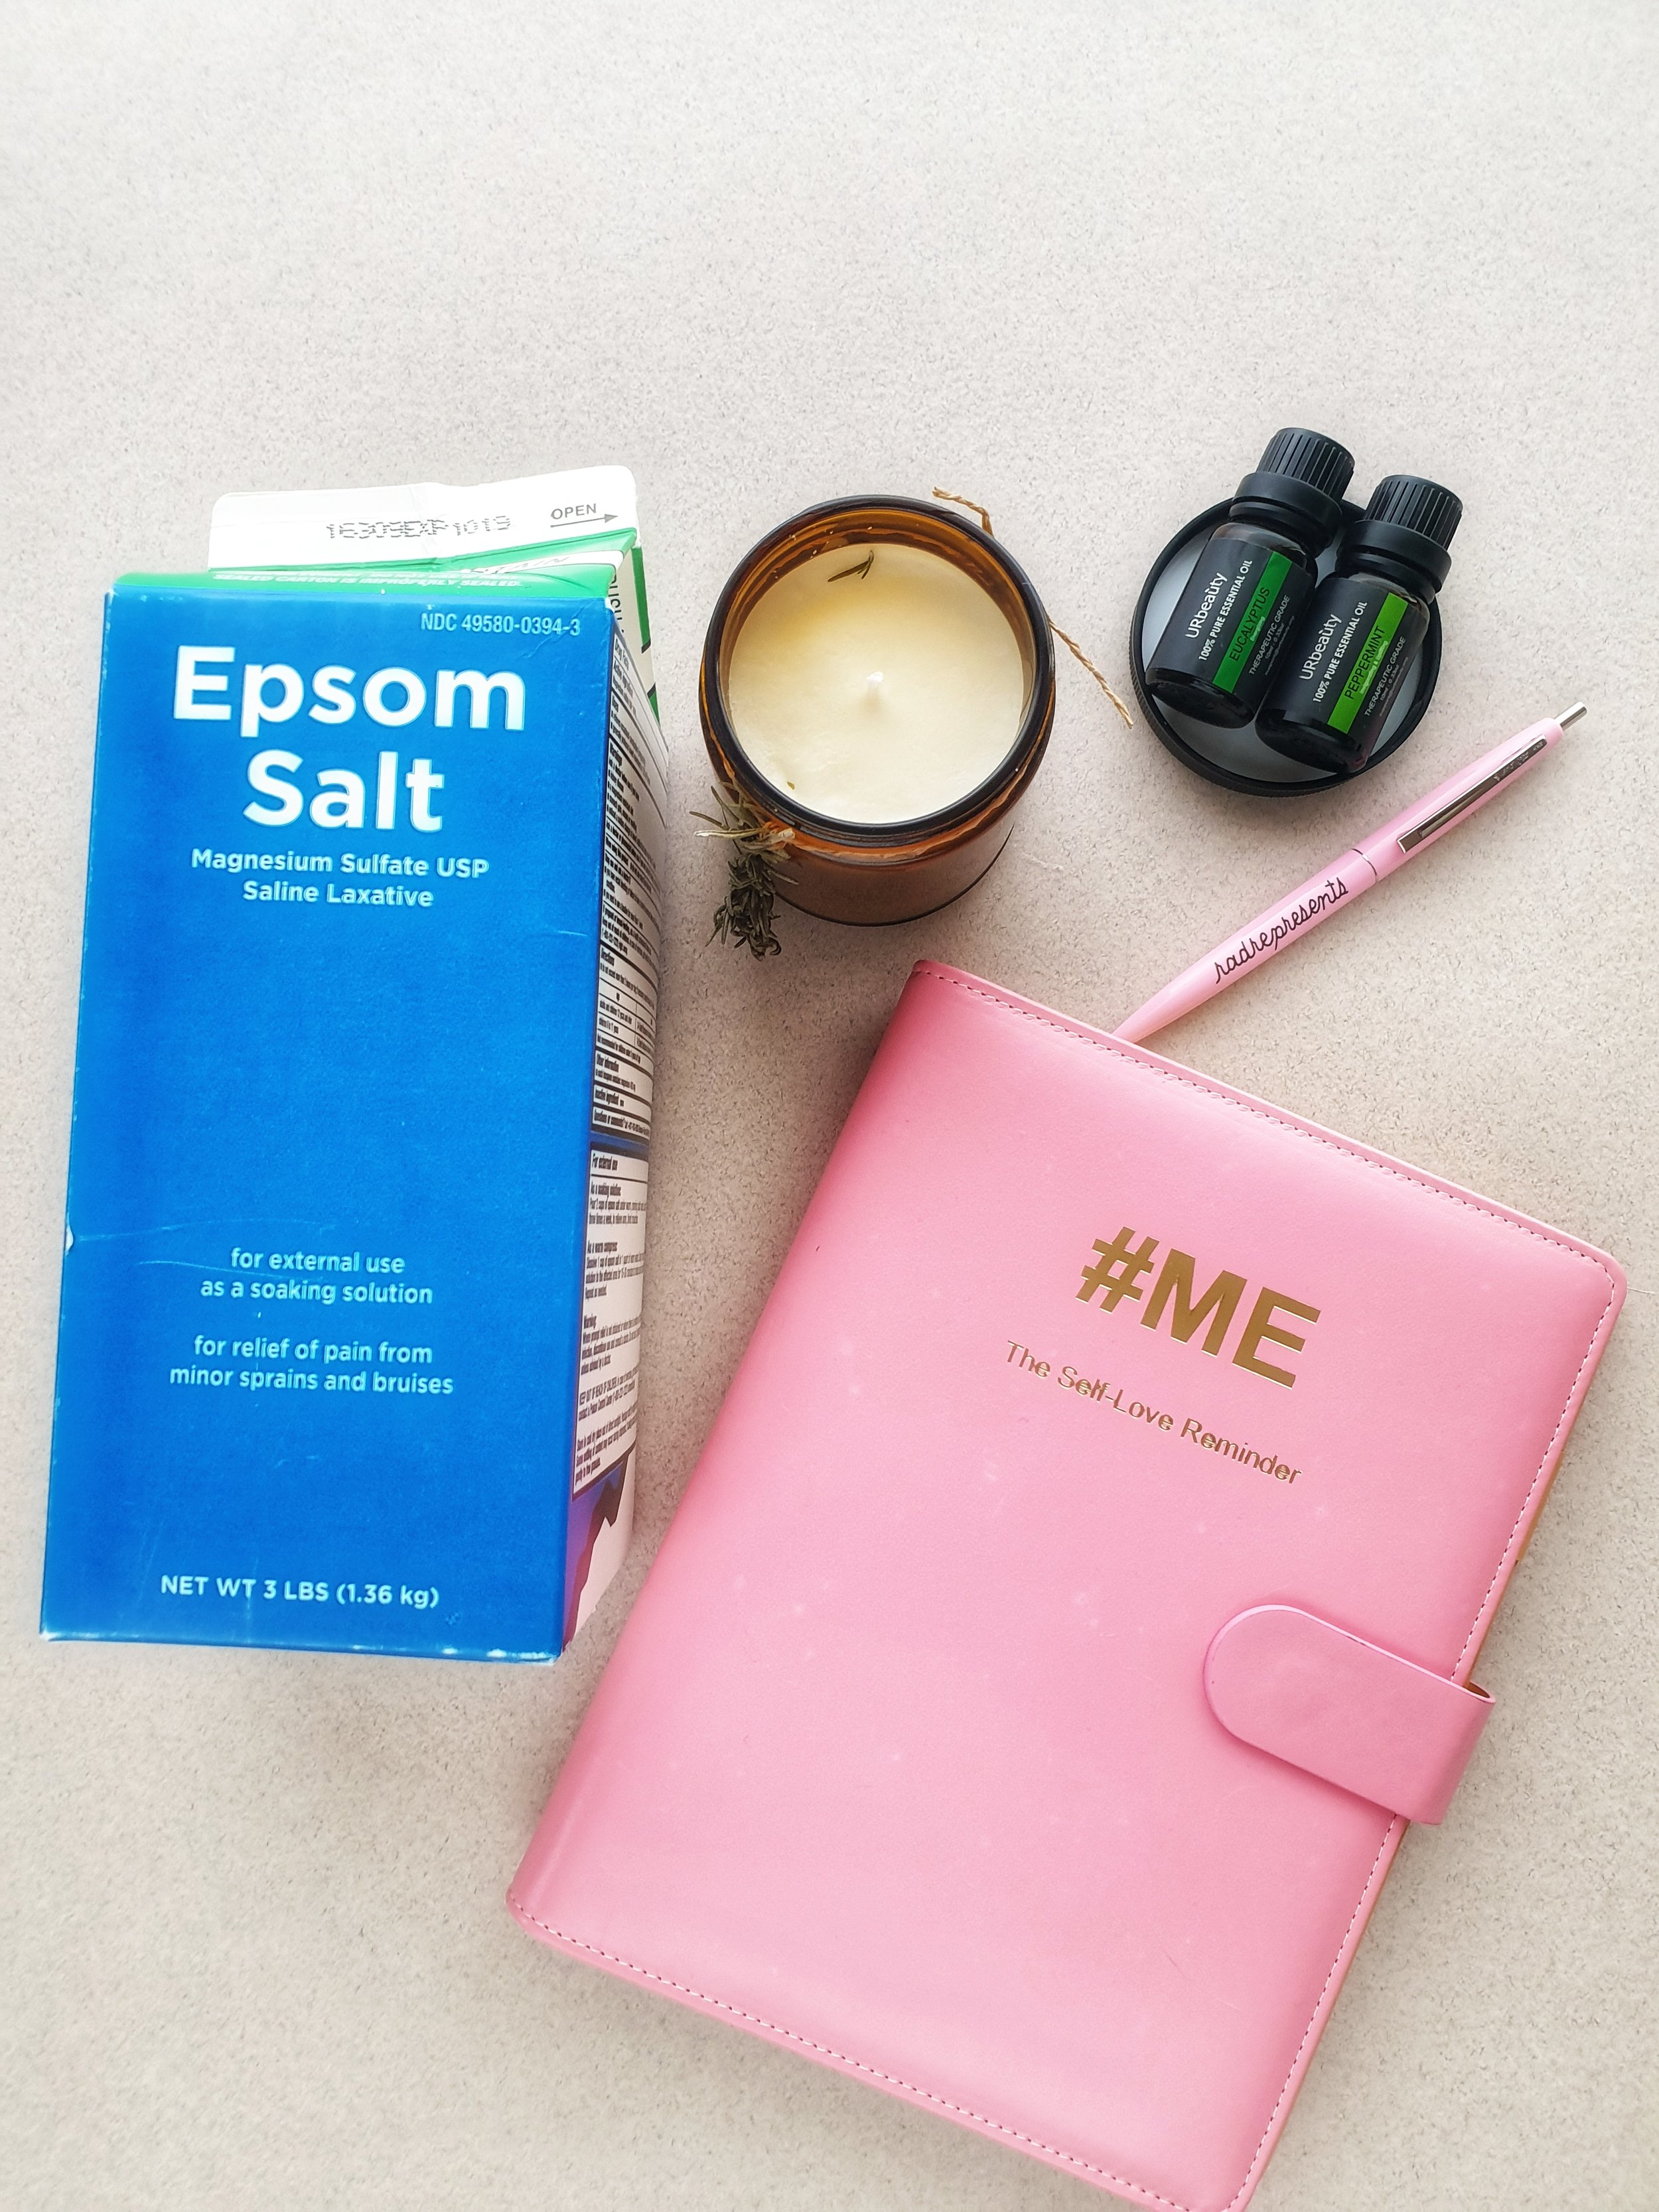 Epsom bath salts, peppermint and eucalyptus essential oils and a self love reminder journal.